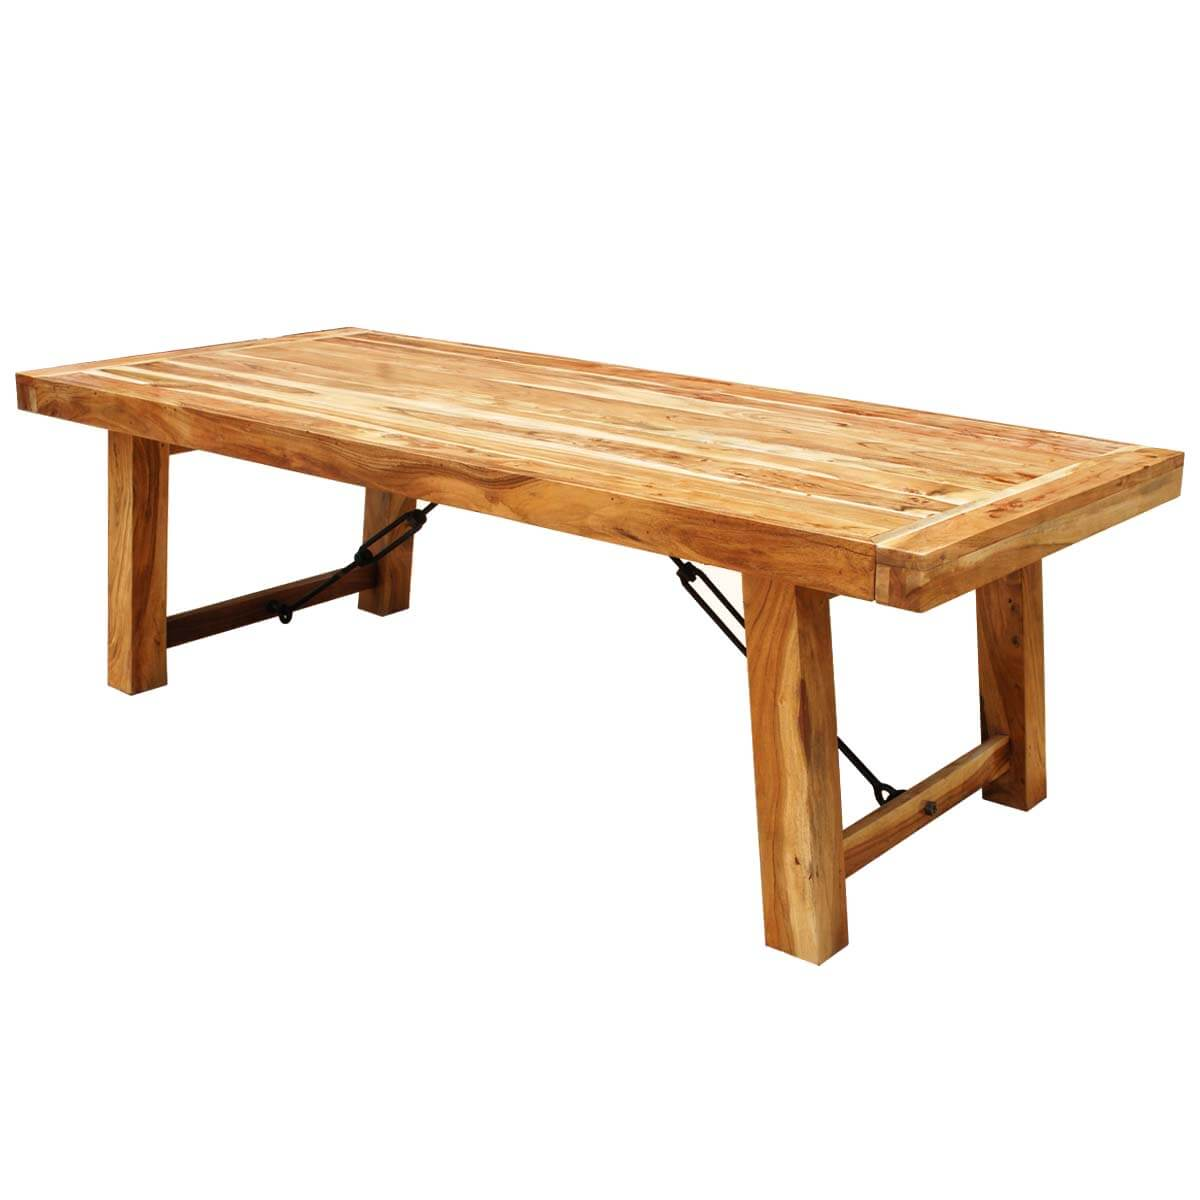 Rustic Wooden Dining Room Table ~ Rustic wood large santa fe dining room table w extensions